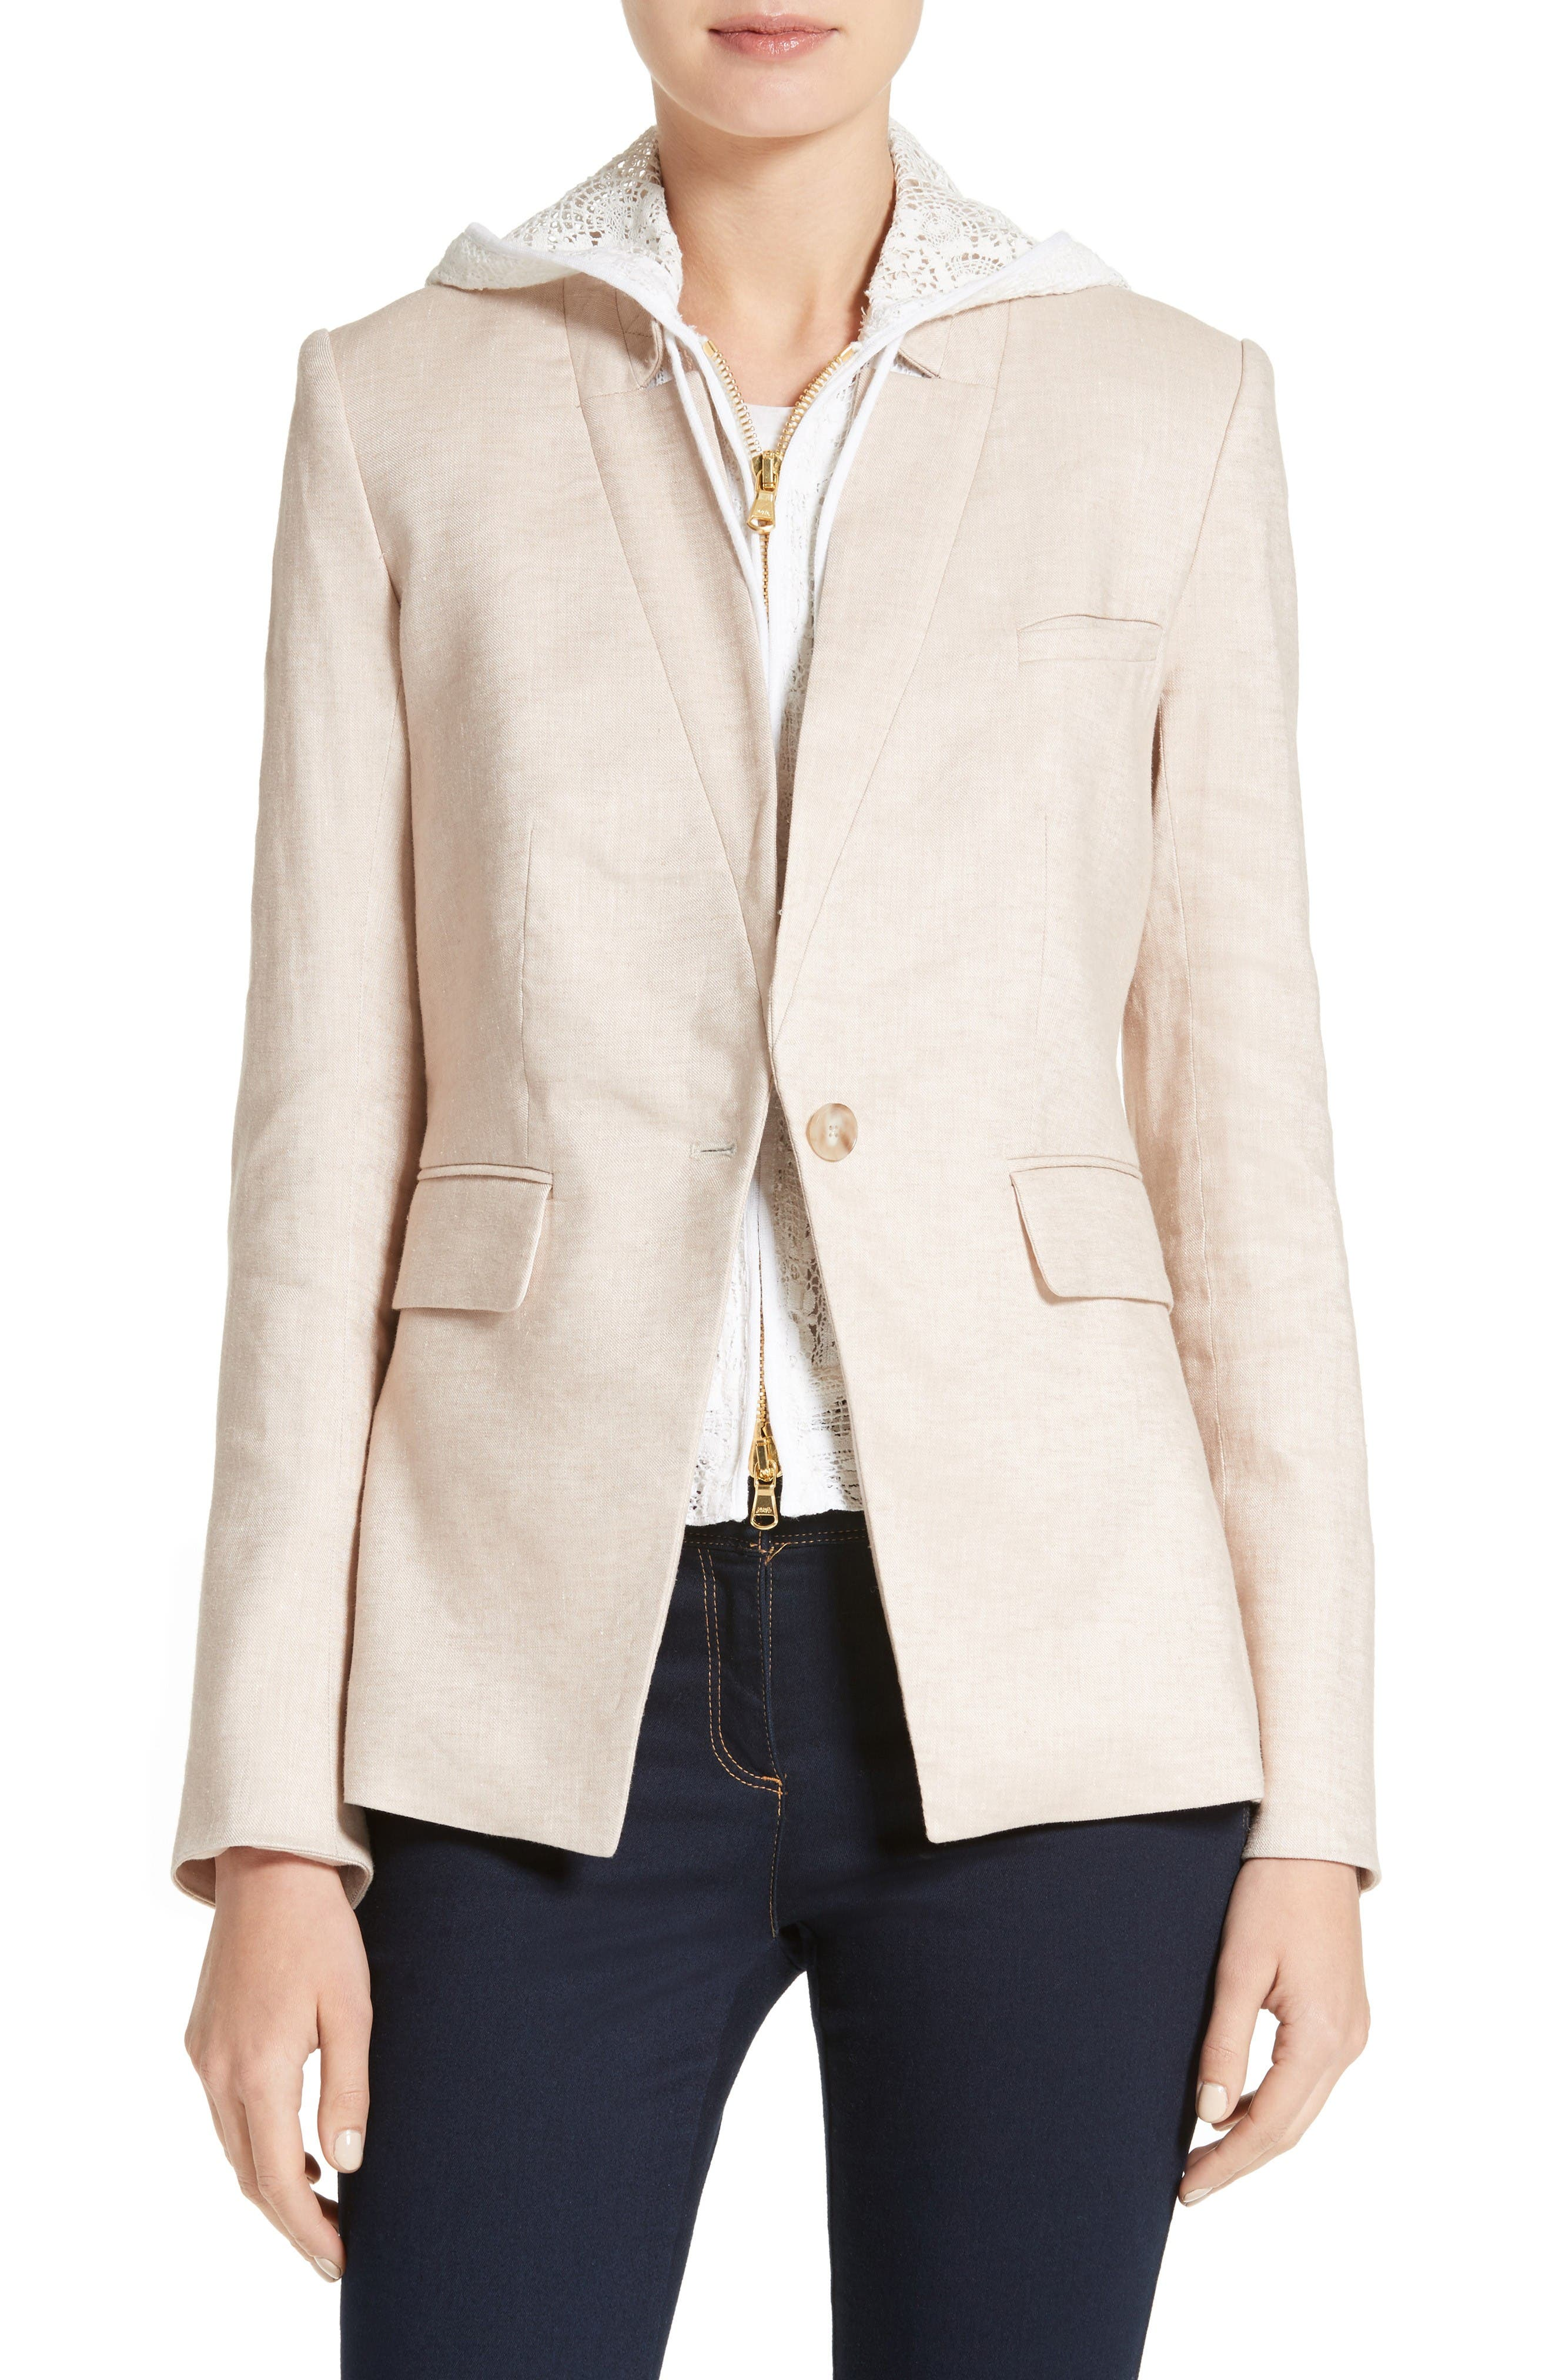 Turn-Up Collar Jacket,                             Main thumbnail 1, color,                             Beige